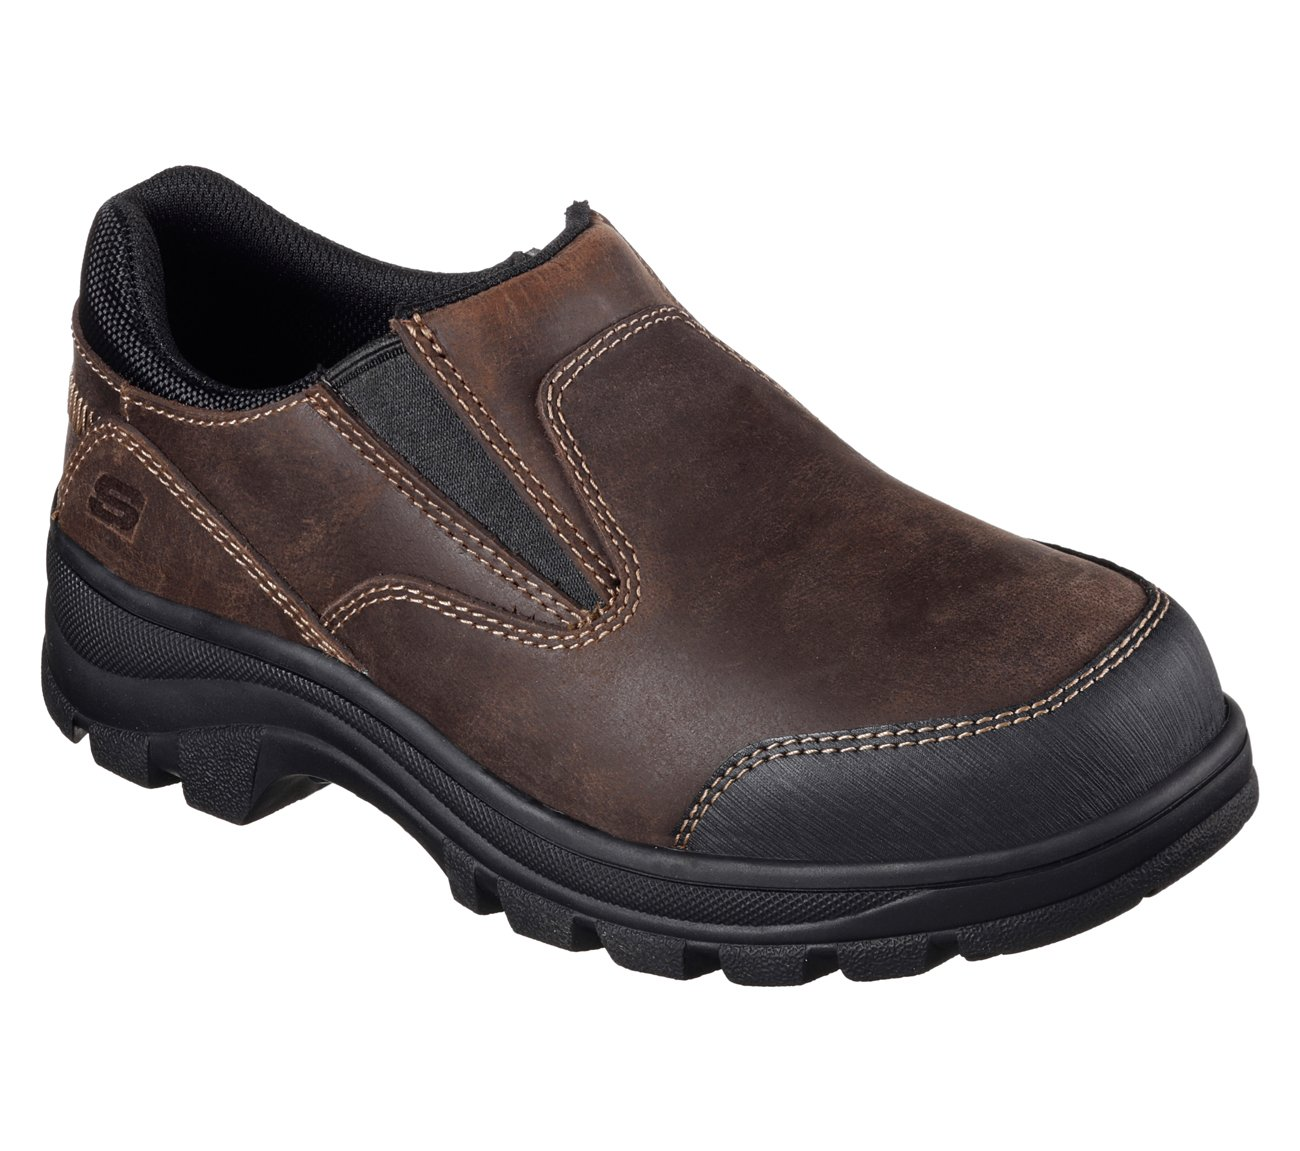 SKECHERS Work Women's Workshire - Teays Dark Brown Buffalo Crazyhorse Leather Shoe